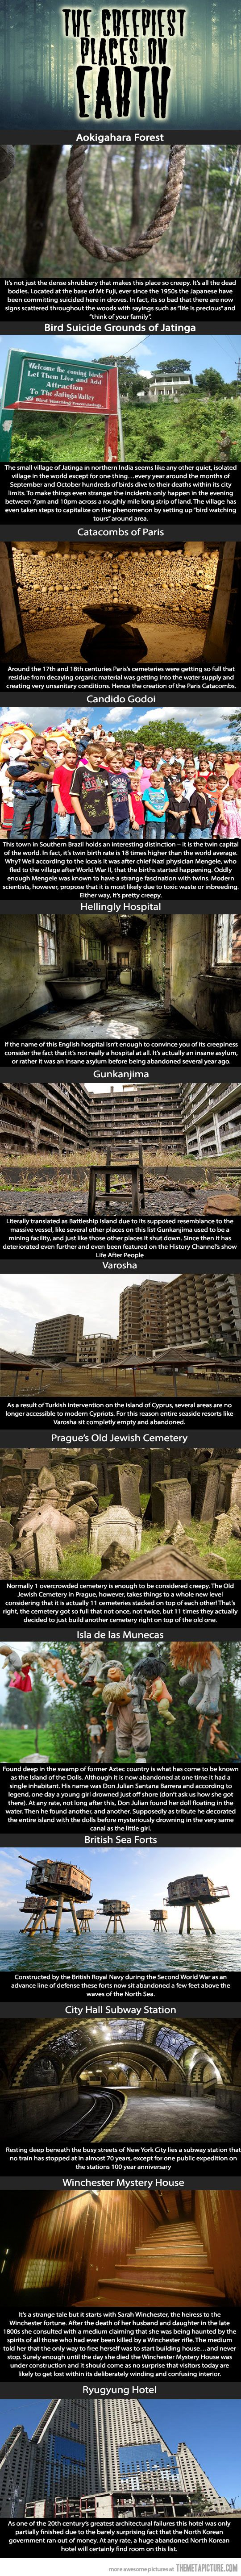 Creepiest Places on Earth… Is it weird that I now have a desire to visit all of these places?